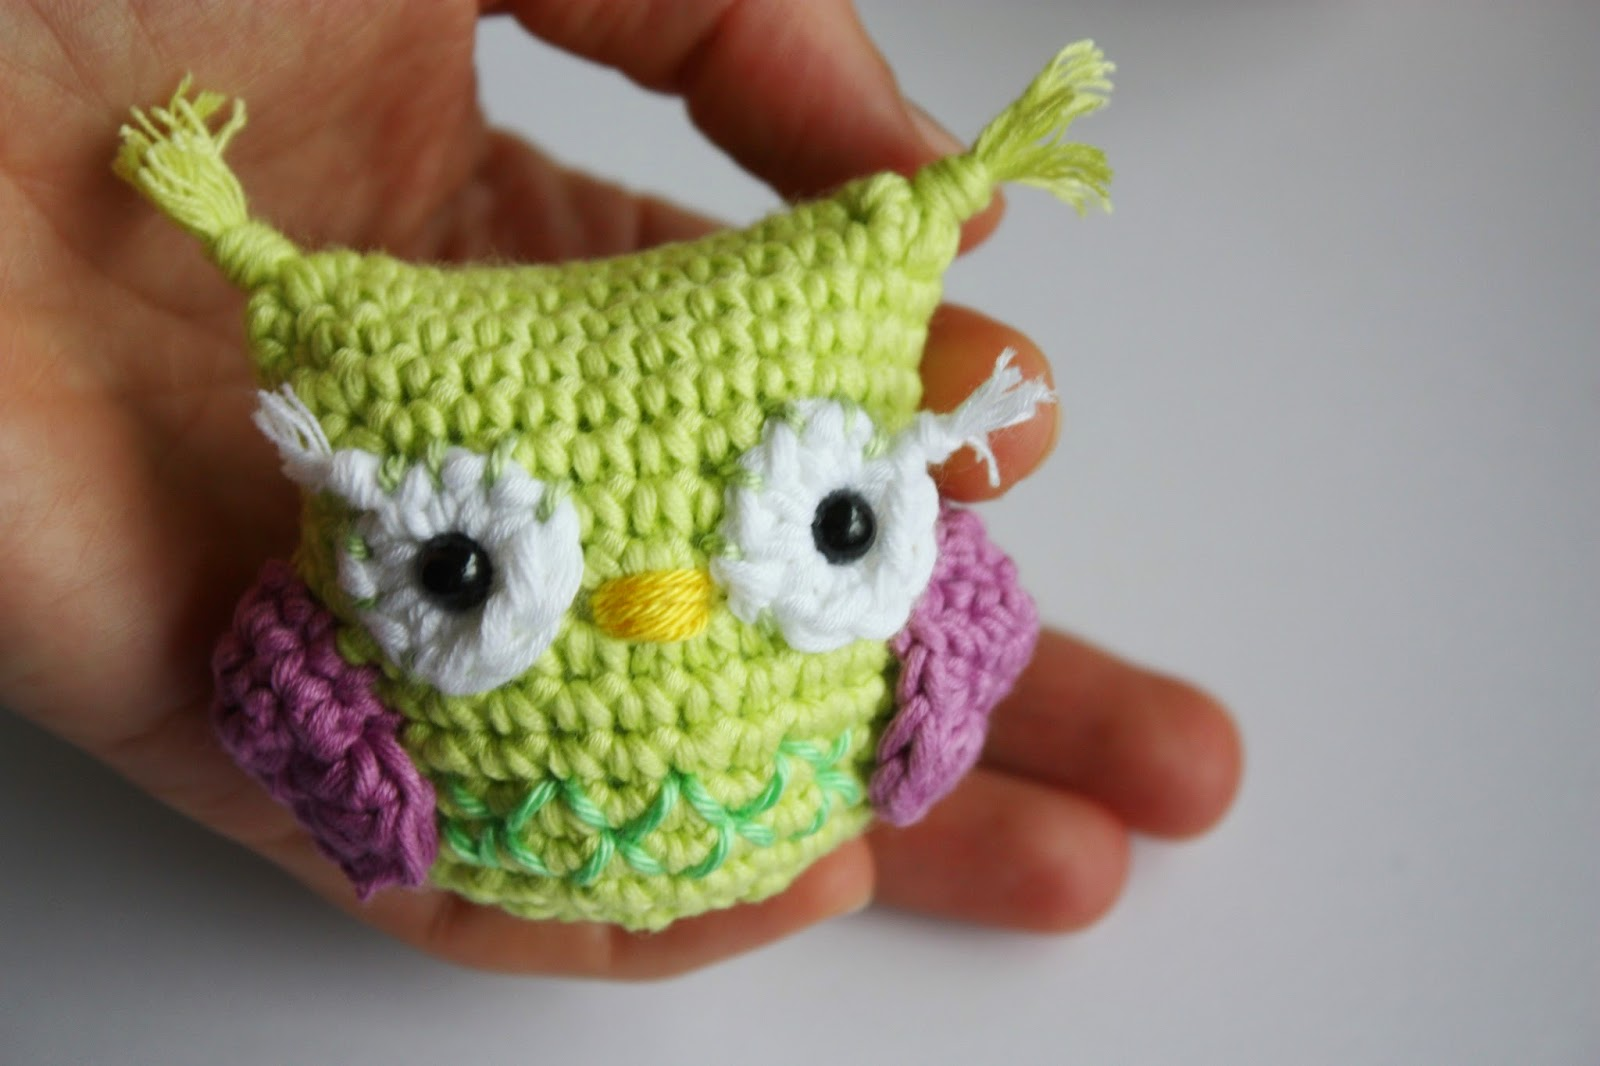 Amigurumi Patterns Owl : Amigurumi creations by Laura